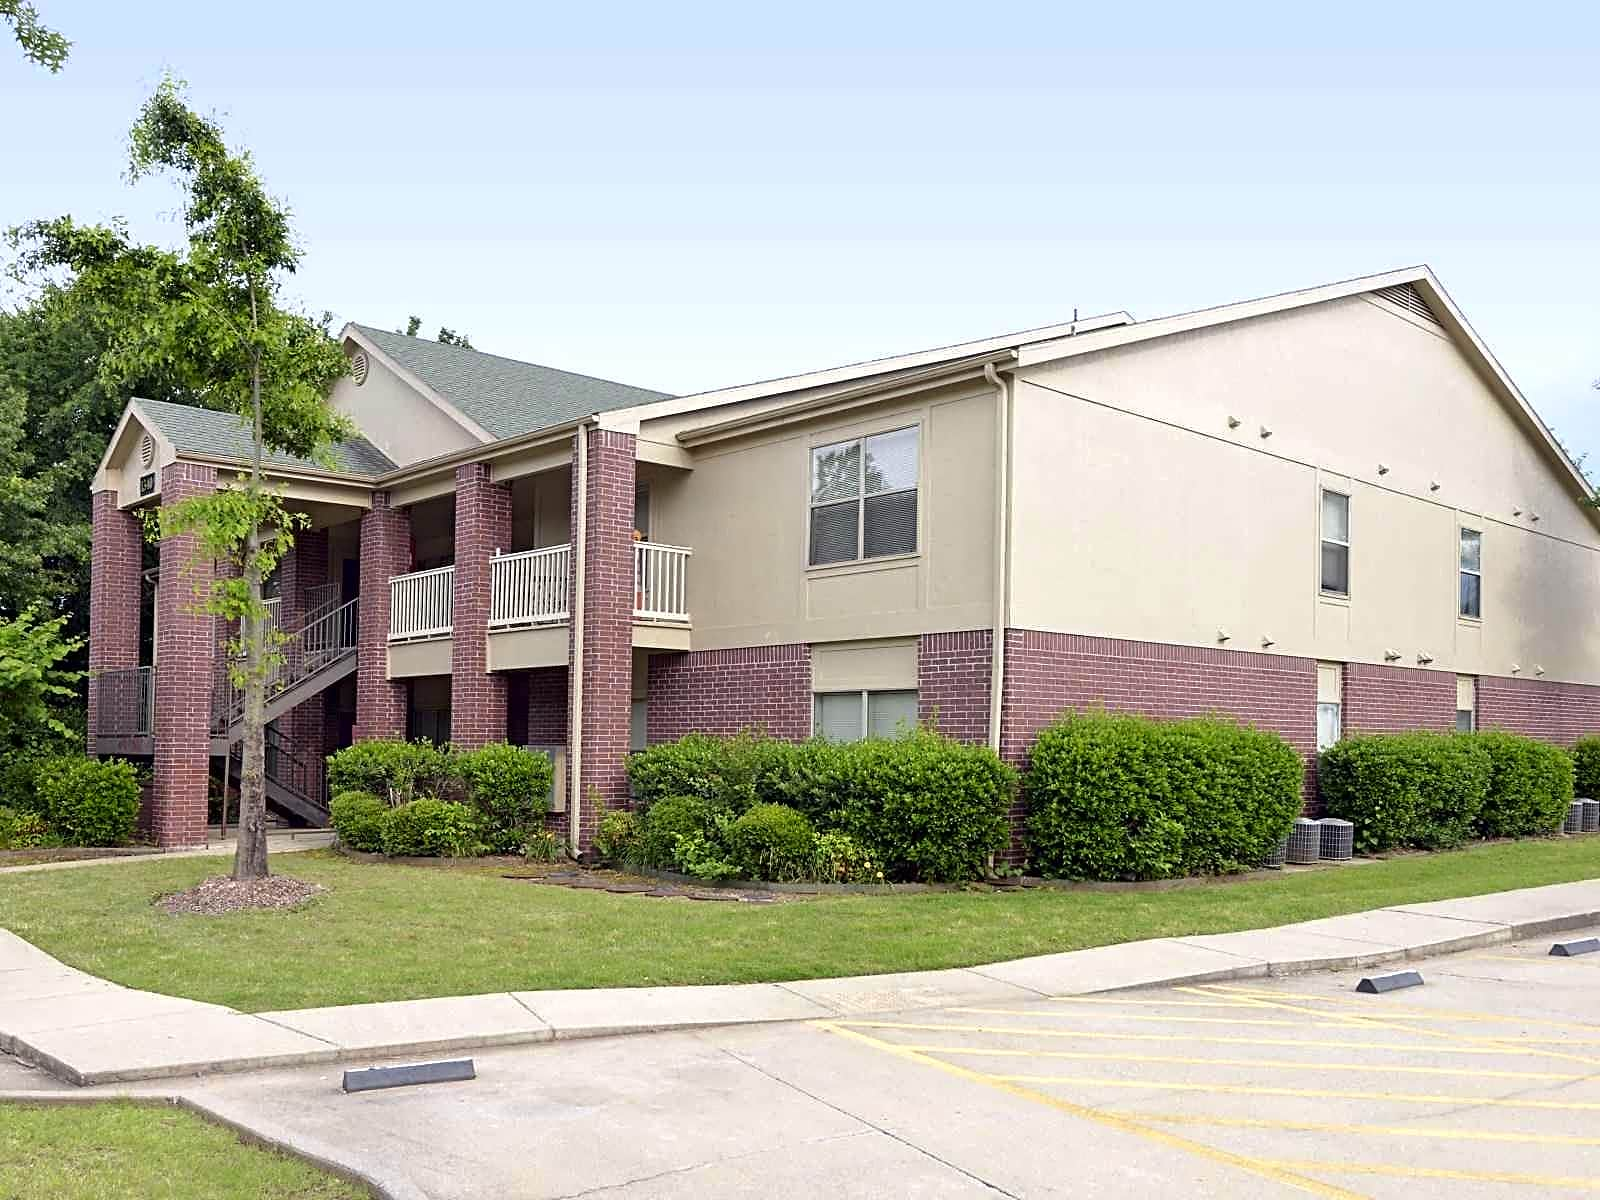 review apartments beautiful fayetteville amp of inn in quinta la hotel suites one bedroom ar